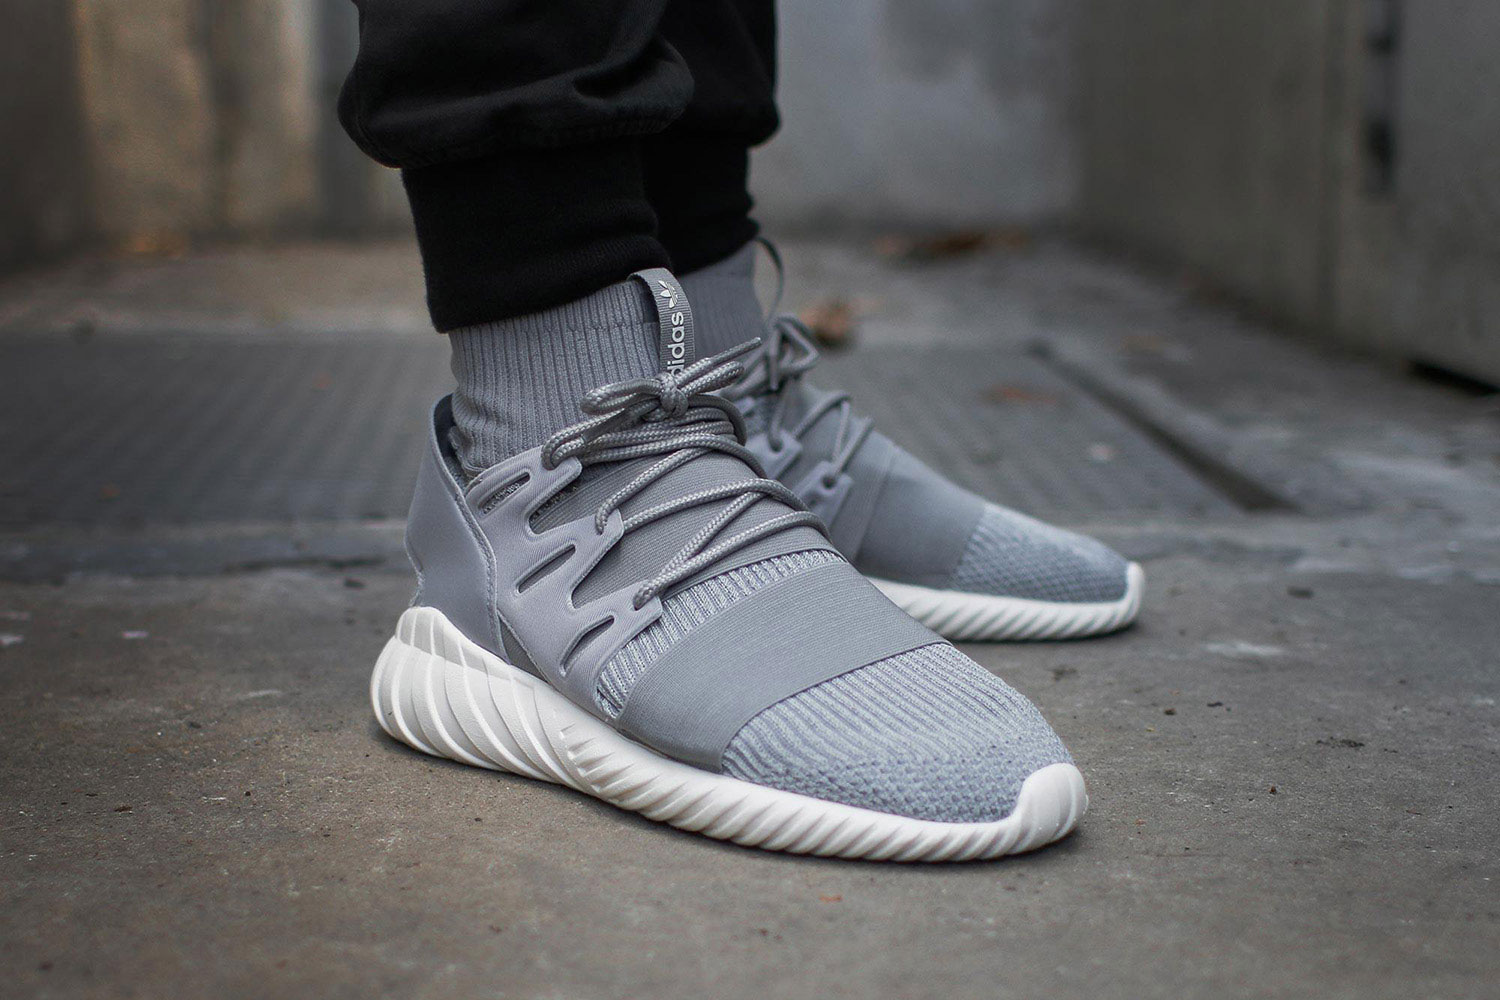 Adidas Originals Tubular Radial Men 's Canada